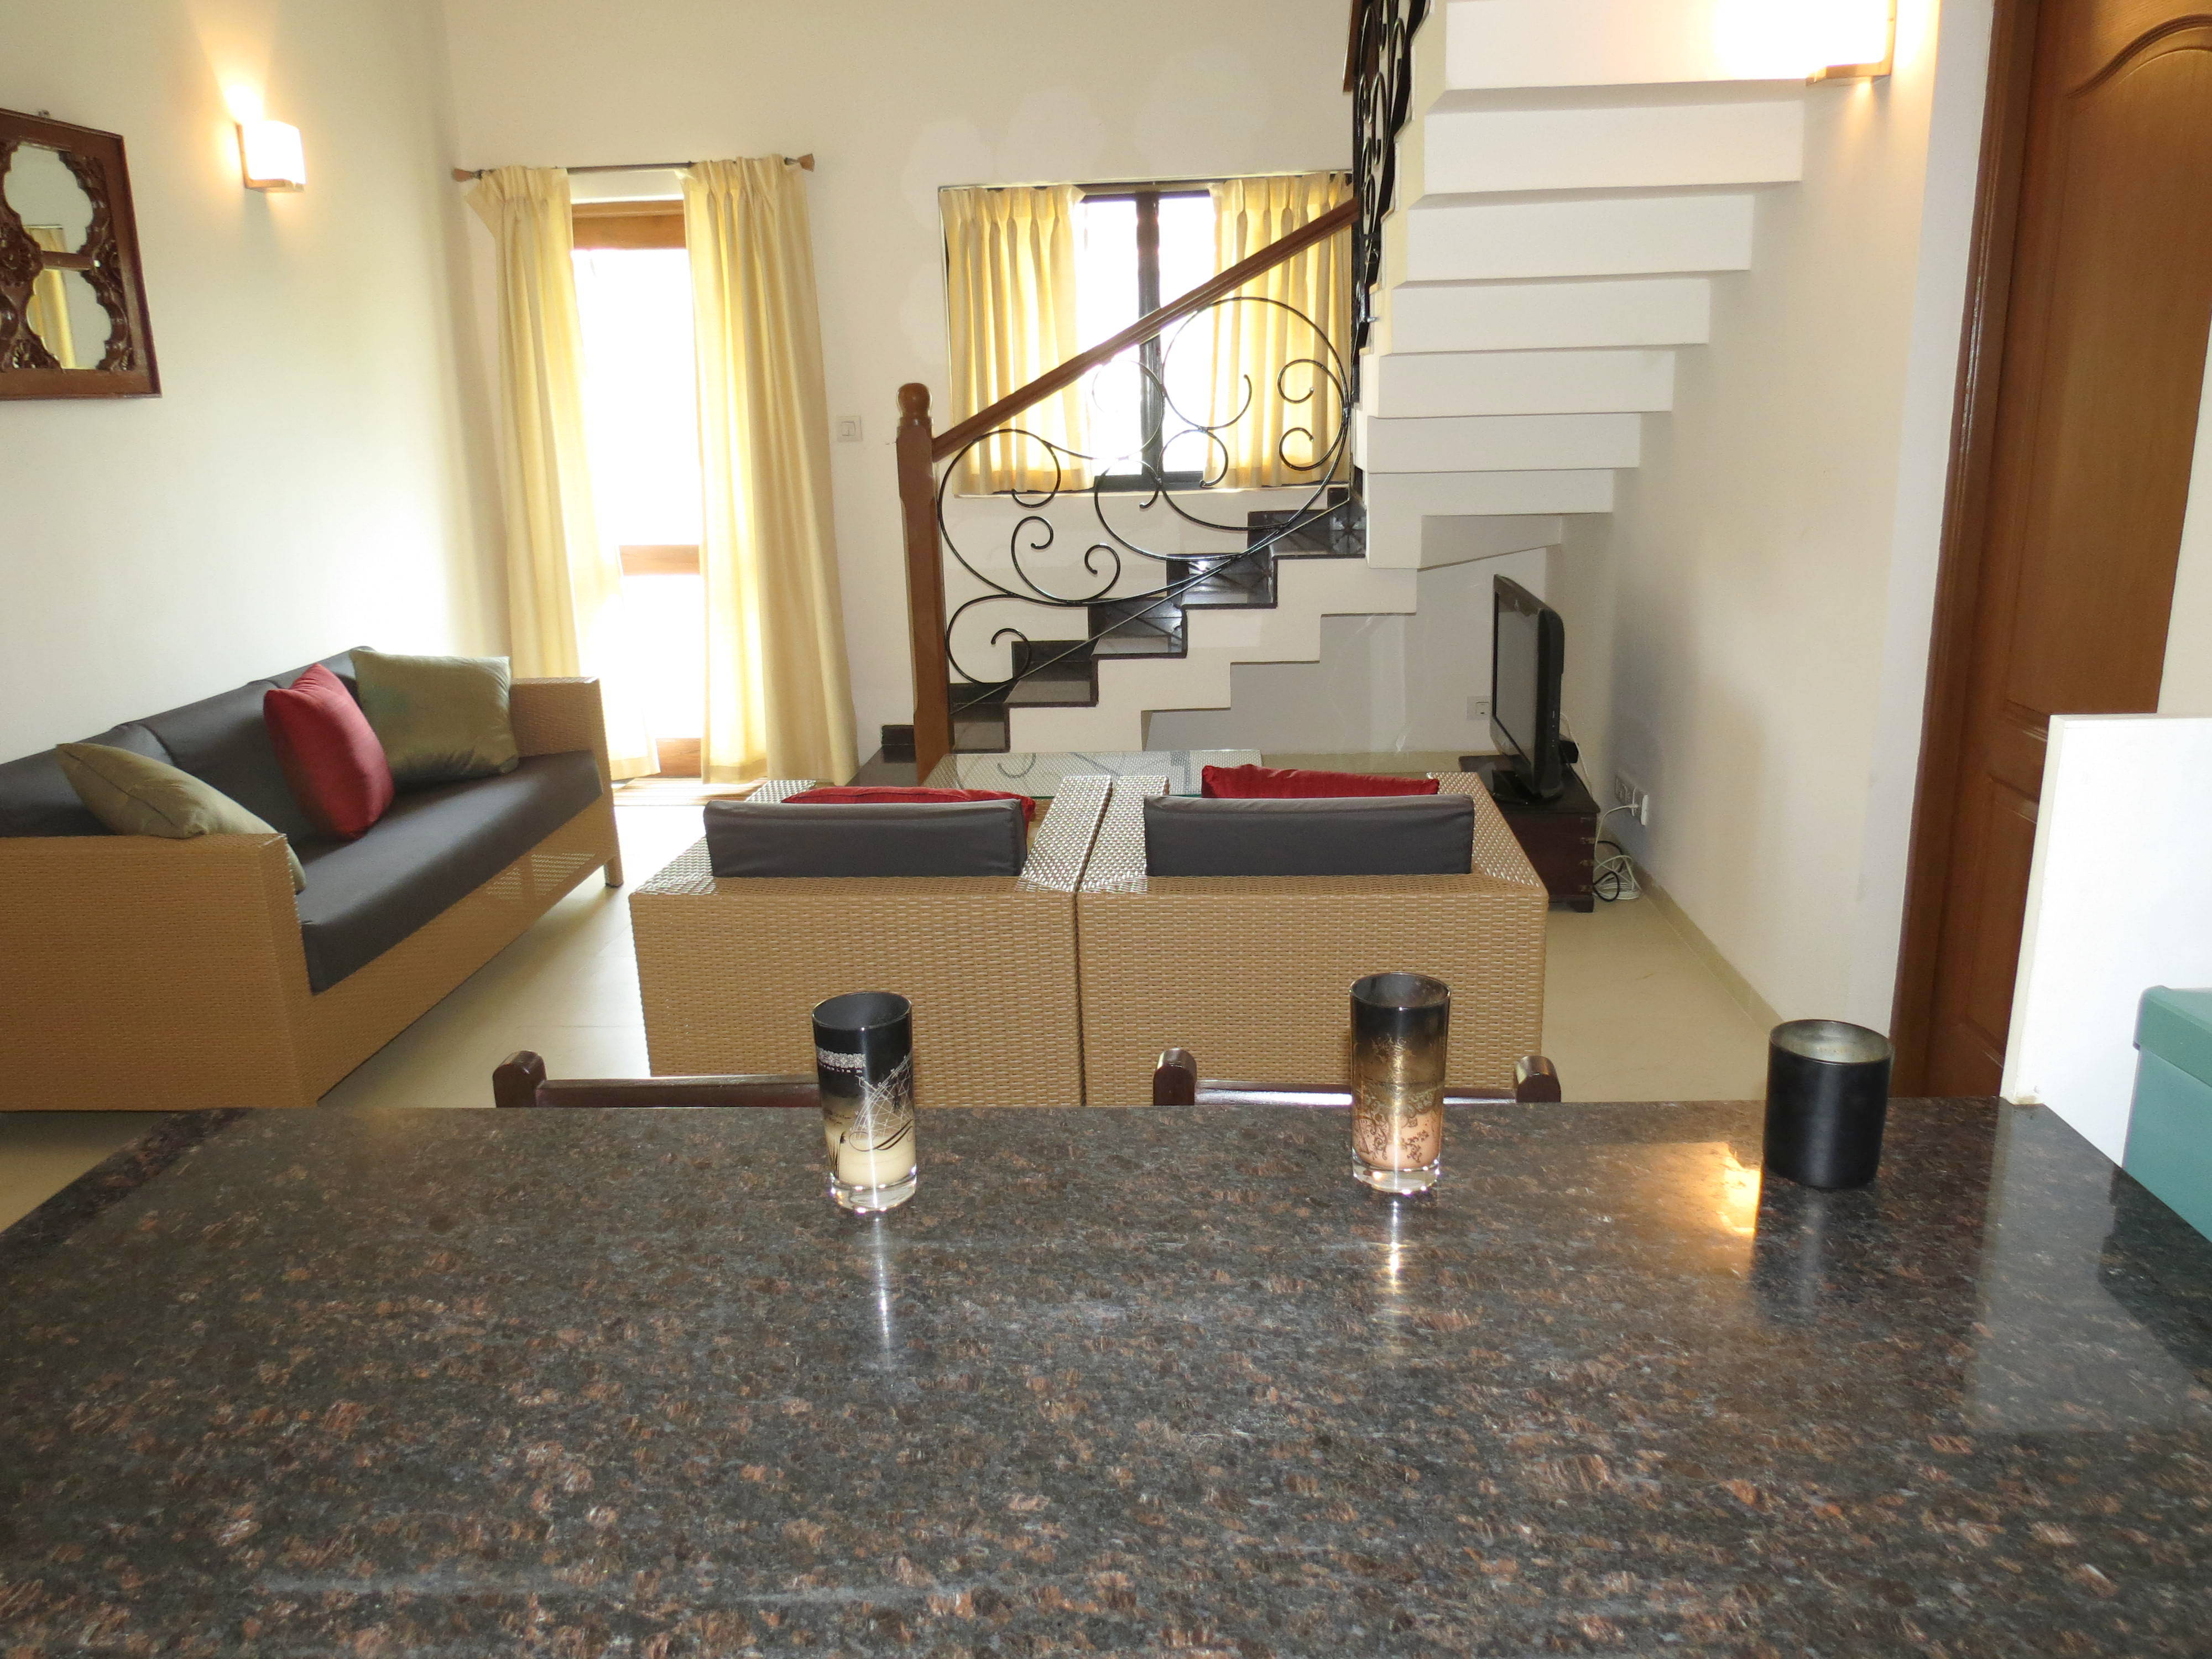 Apartment 04  Spacious luxurious 2 bedroom serviced apartment    WiFi photo 18819298